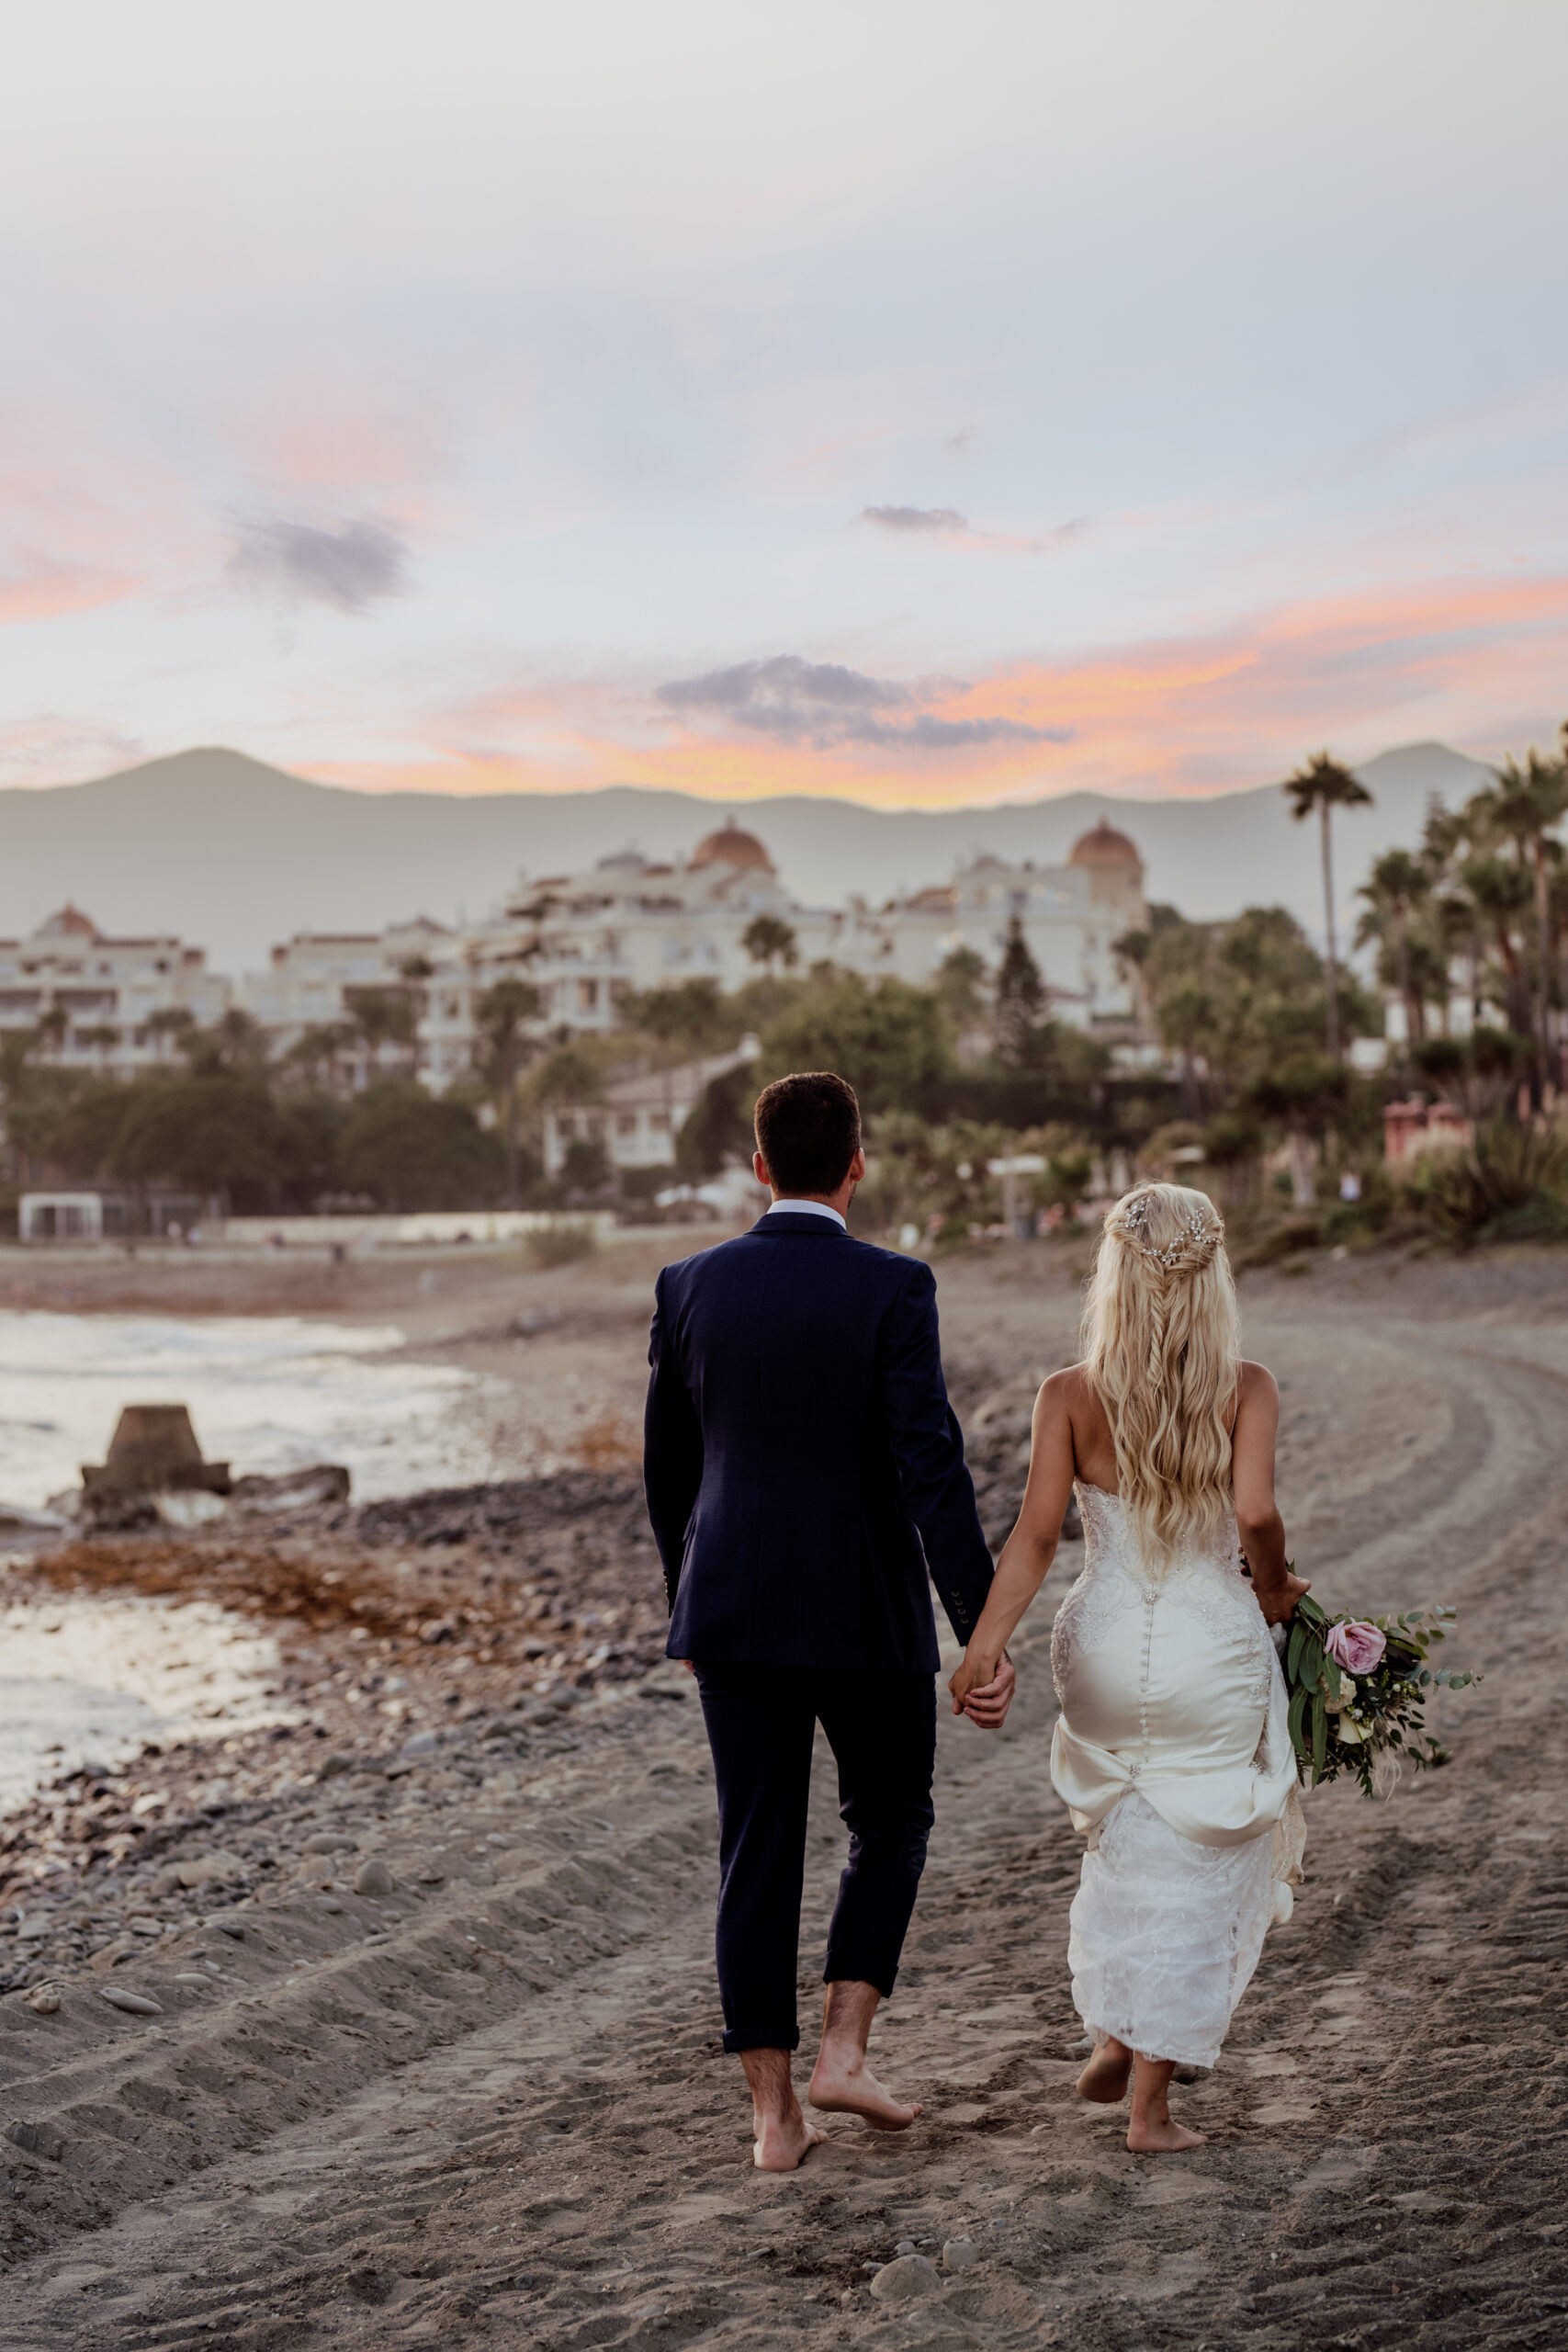 The bride and groom stroll on the beach at sundown - Rebecca Davidson Photography